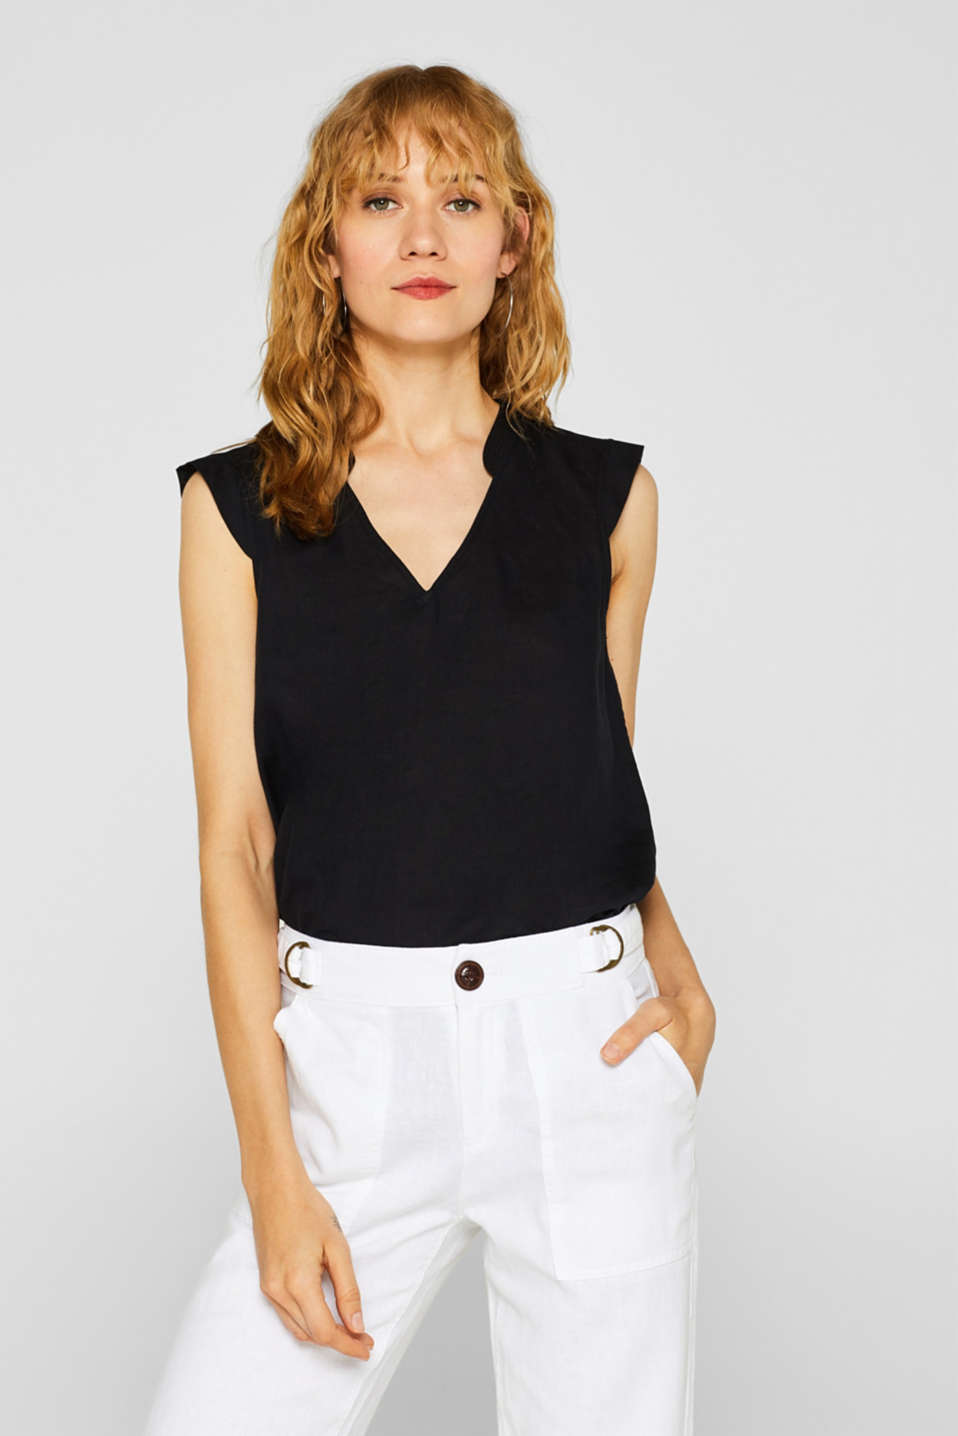 Esprit - Made of blended linen: blouse top with flounce details